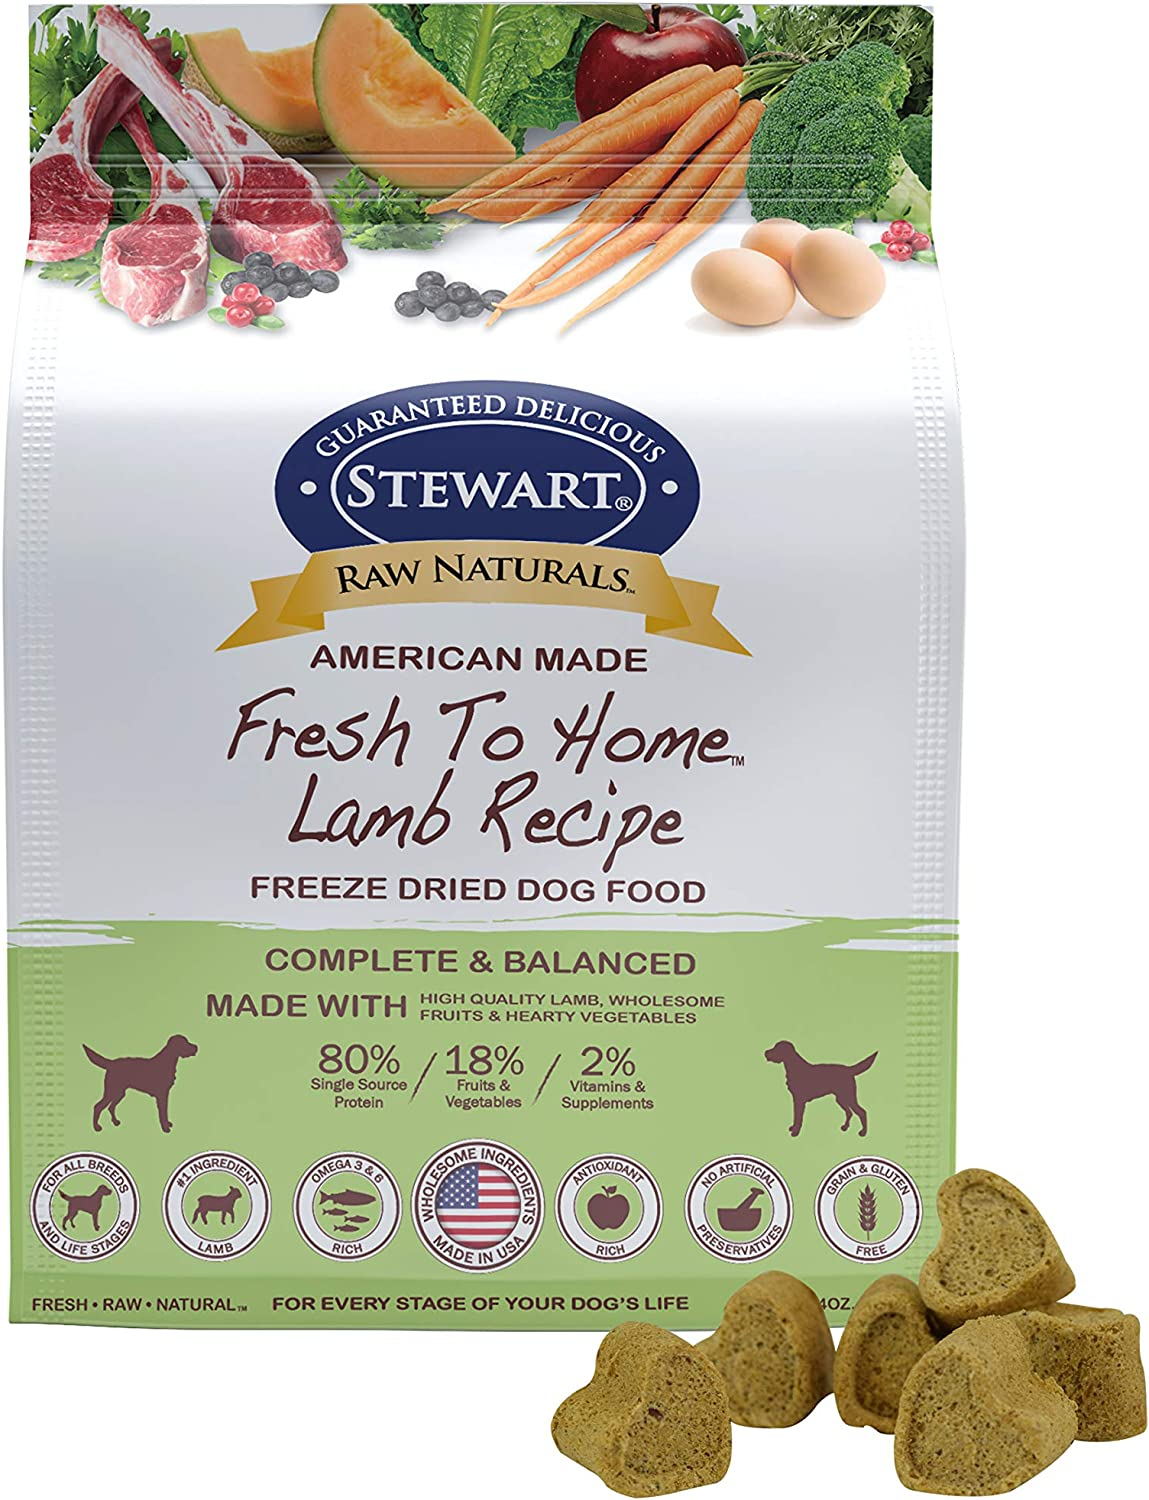 Stewart Raw Naturals Freeze Dried Dog Food Grain Free Made in USA with Lamb, Fruits, & Vegetables for Fresh To Home All Natural Recipe, 24 oz.